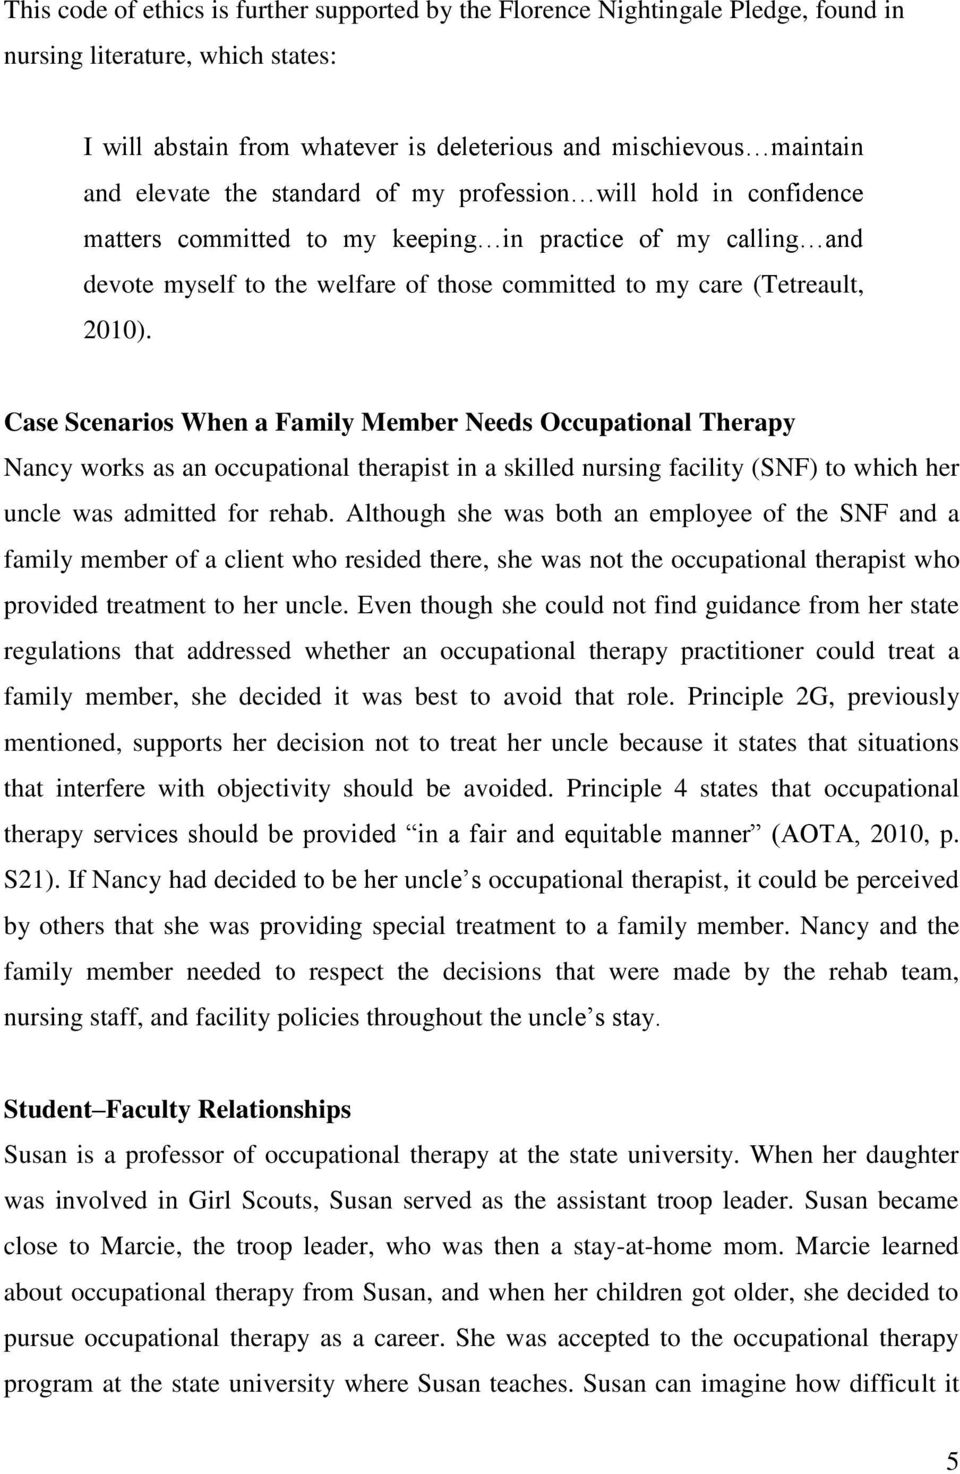 2010). Case Scenarios When a Family Member Needs Occupational Therapy Nancy works as an occupational therapist in a skilled nursing facility (SNF) to which her uncle was admitted for rehab.